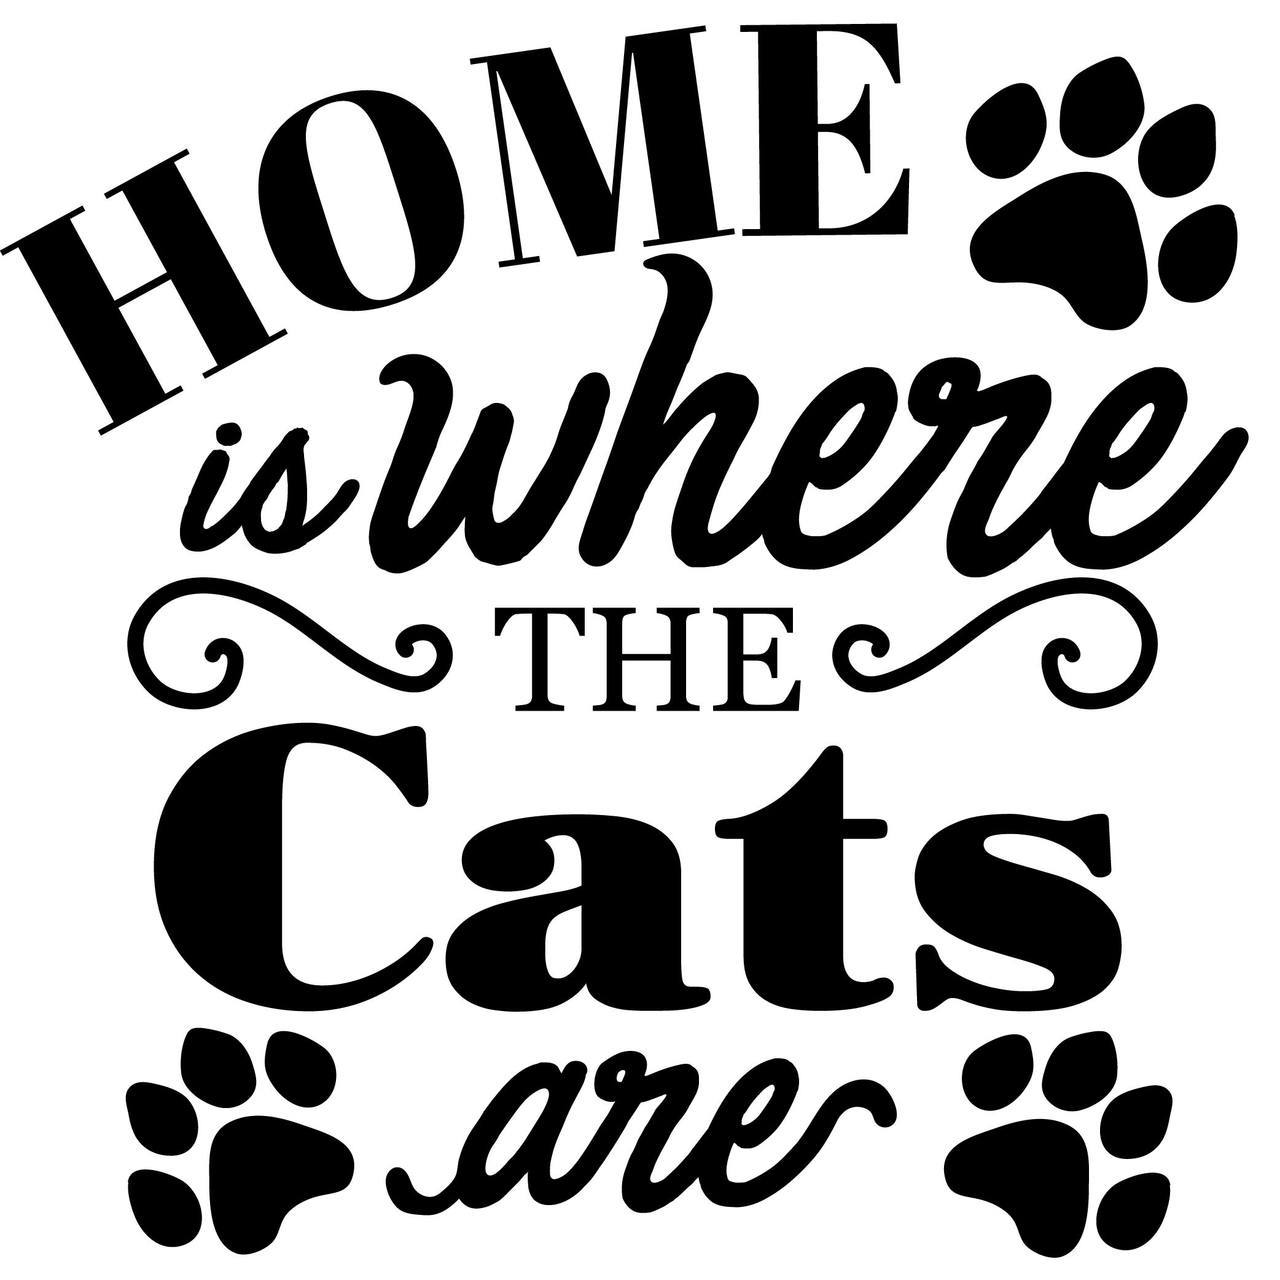 Free clipart welcome back mom from the cats. Home is where are